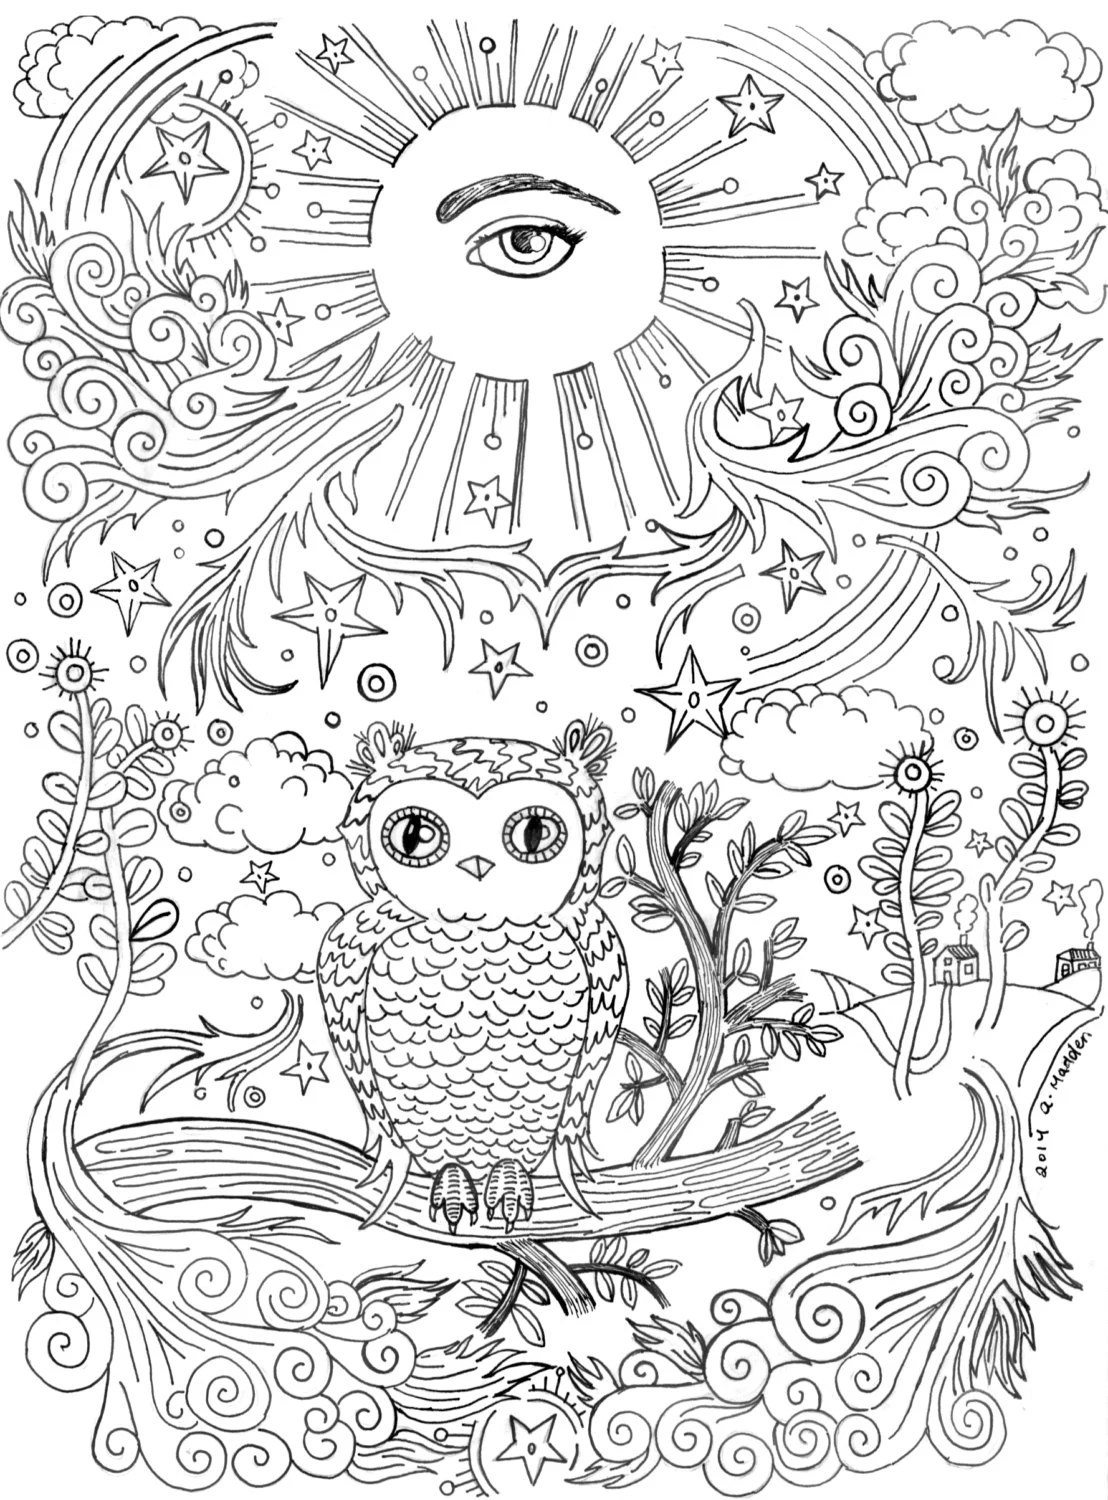 Coloring Book Page All Seeing Eye With Owl On A Branch